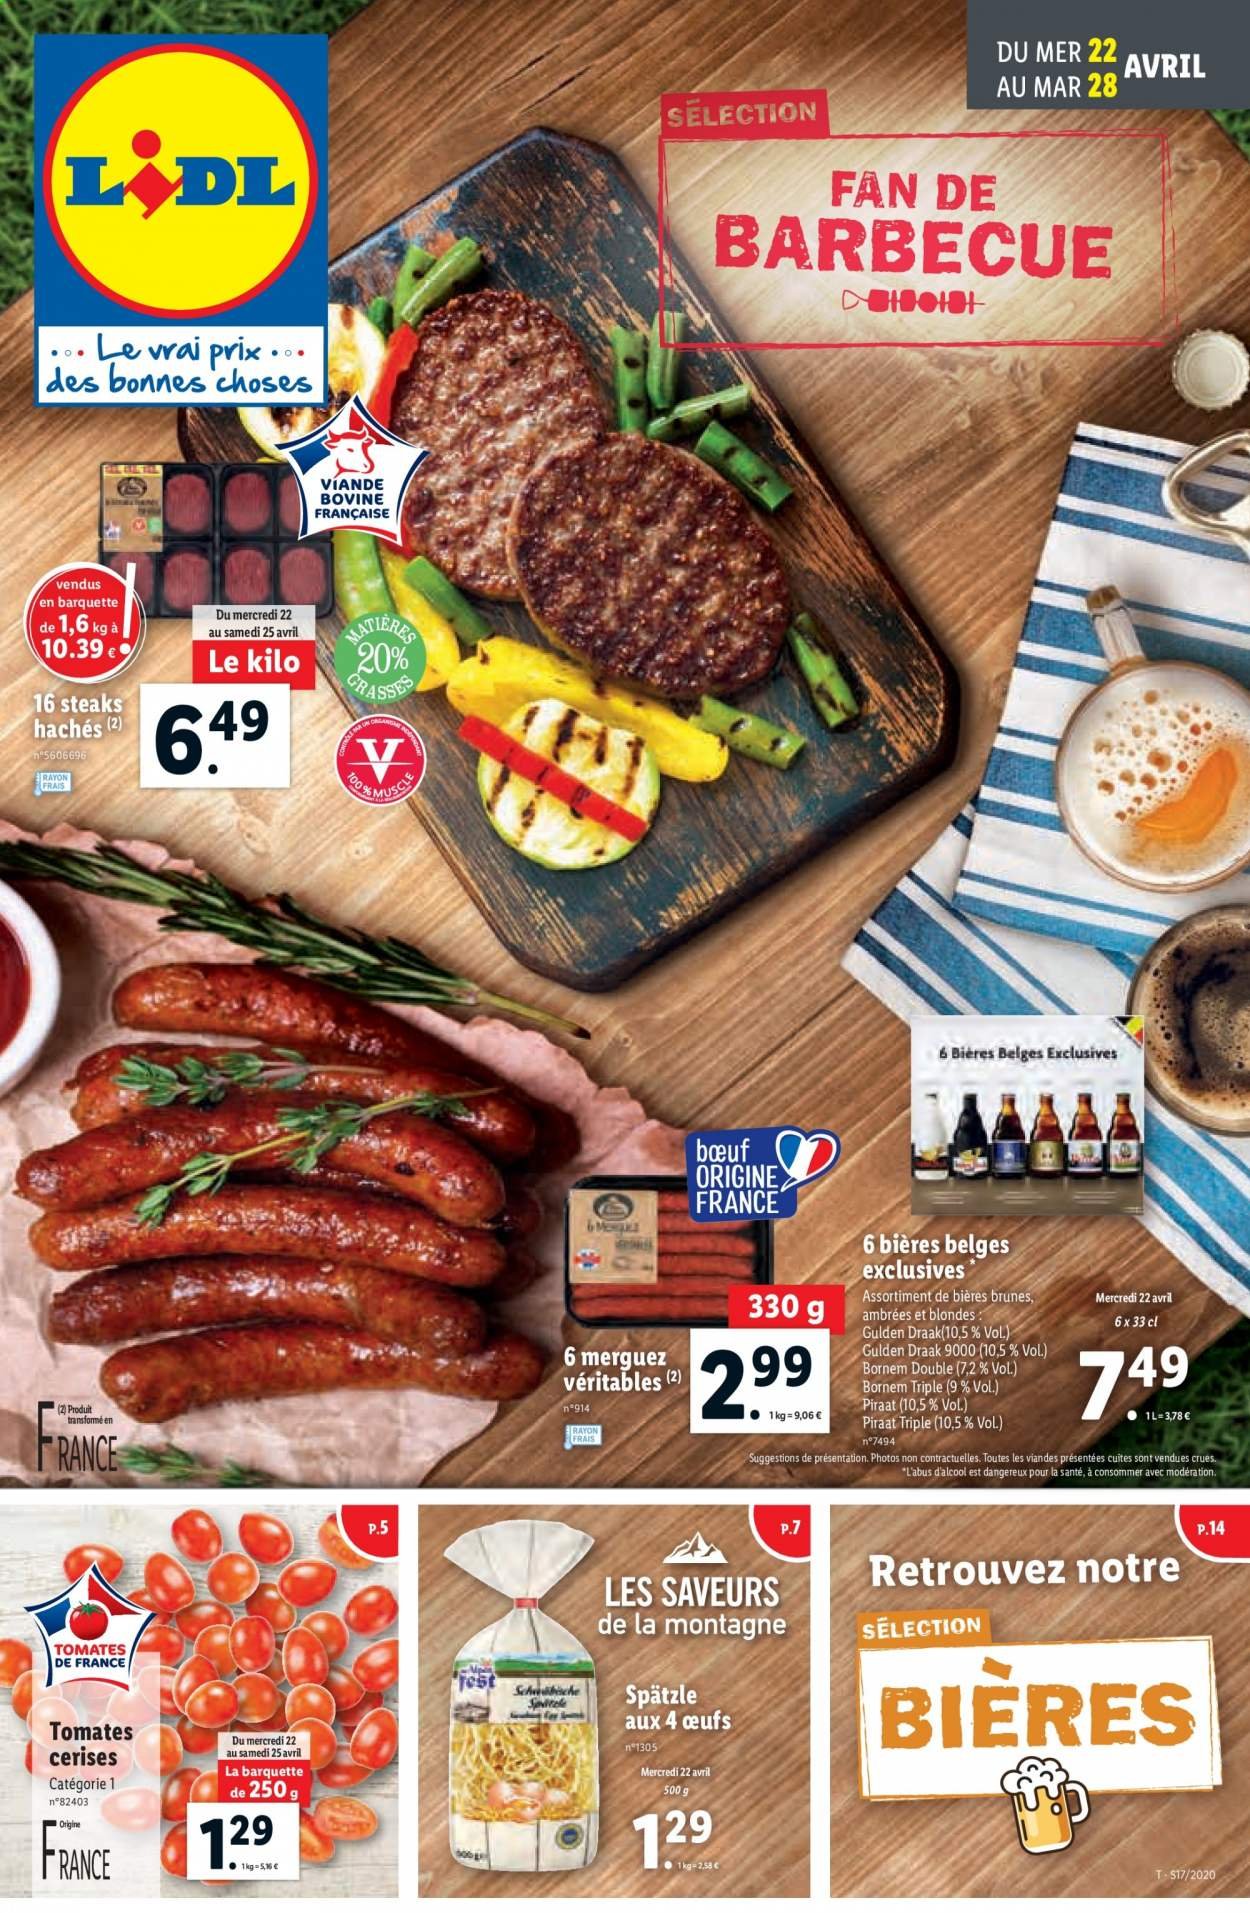 Catalogue Lidl - 22.04.2020 - 28.04.2020. Page 1.